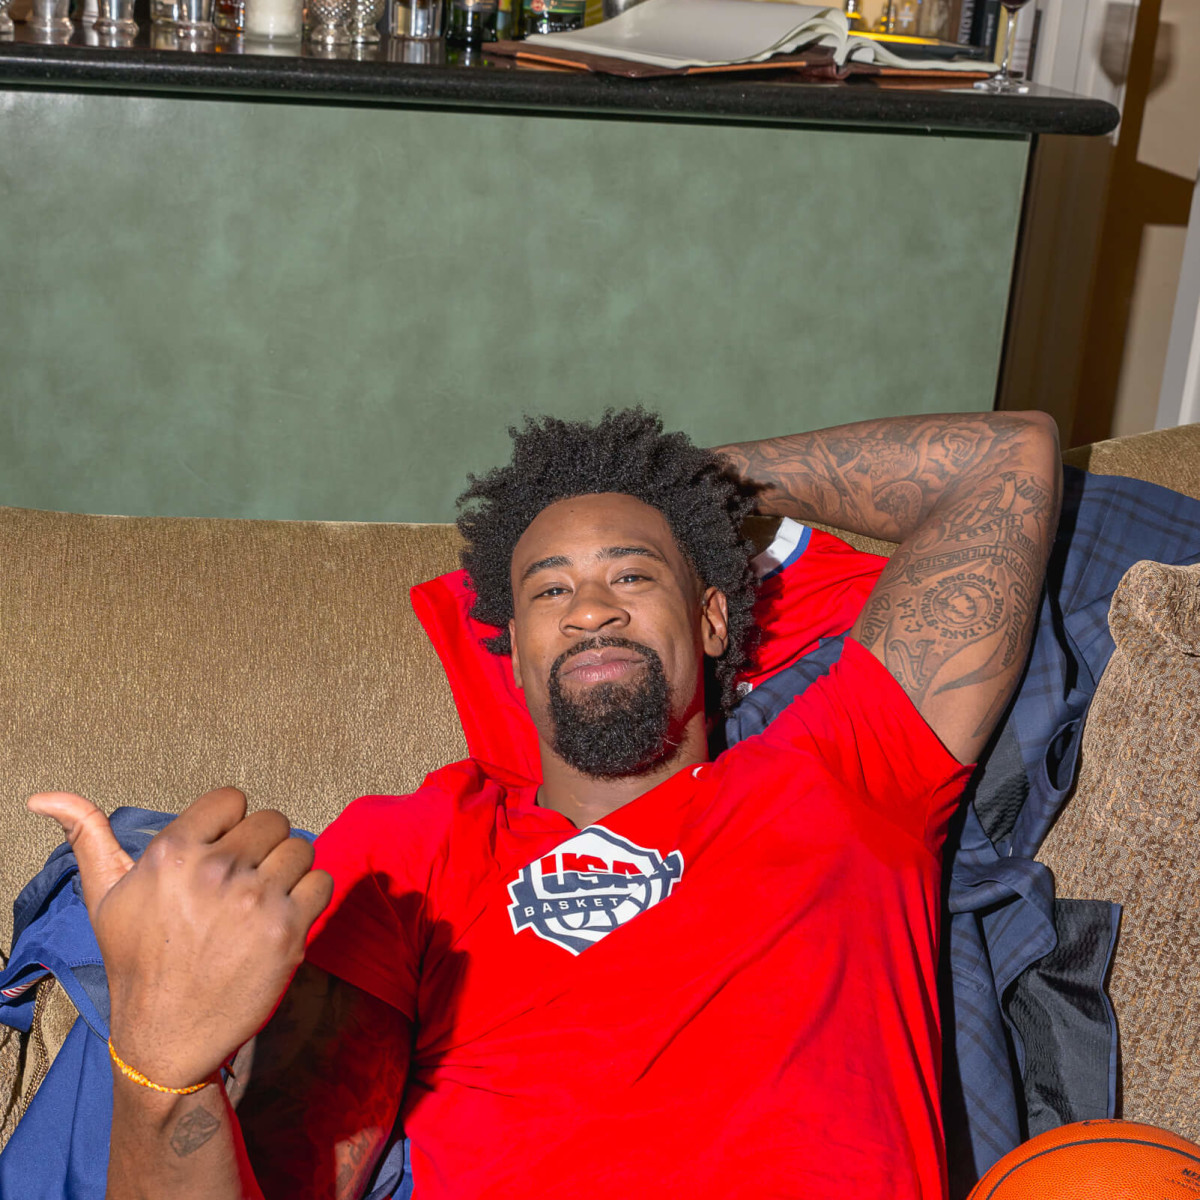 Olympic Basketball party 7/16, Hublot watch, DeAndre Jordan